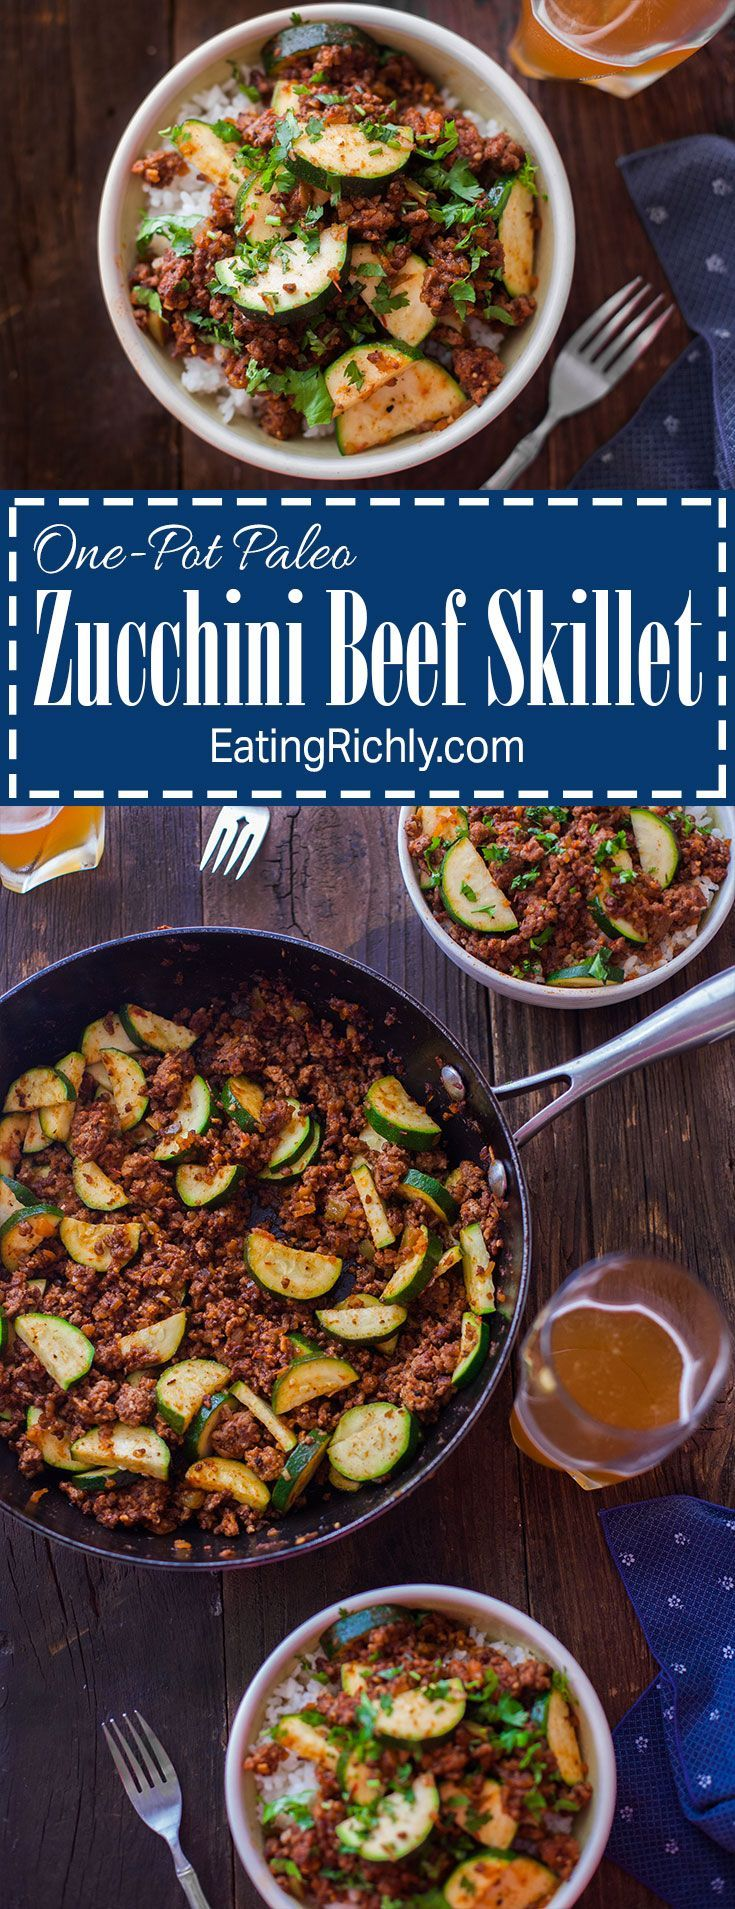 Need a quick easy paleo dinner? This one-pot zucchini beef skillet is ready in 30 minutes and can be eaten as is or over rice. Use up that garden zucchini! From http://EatingRichly.com